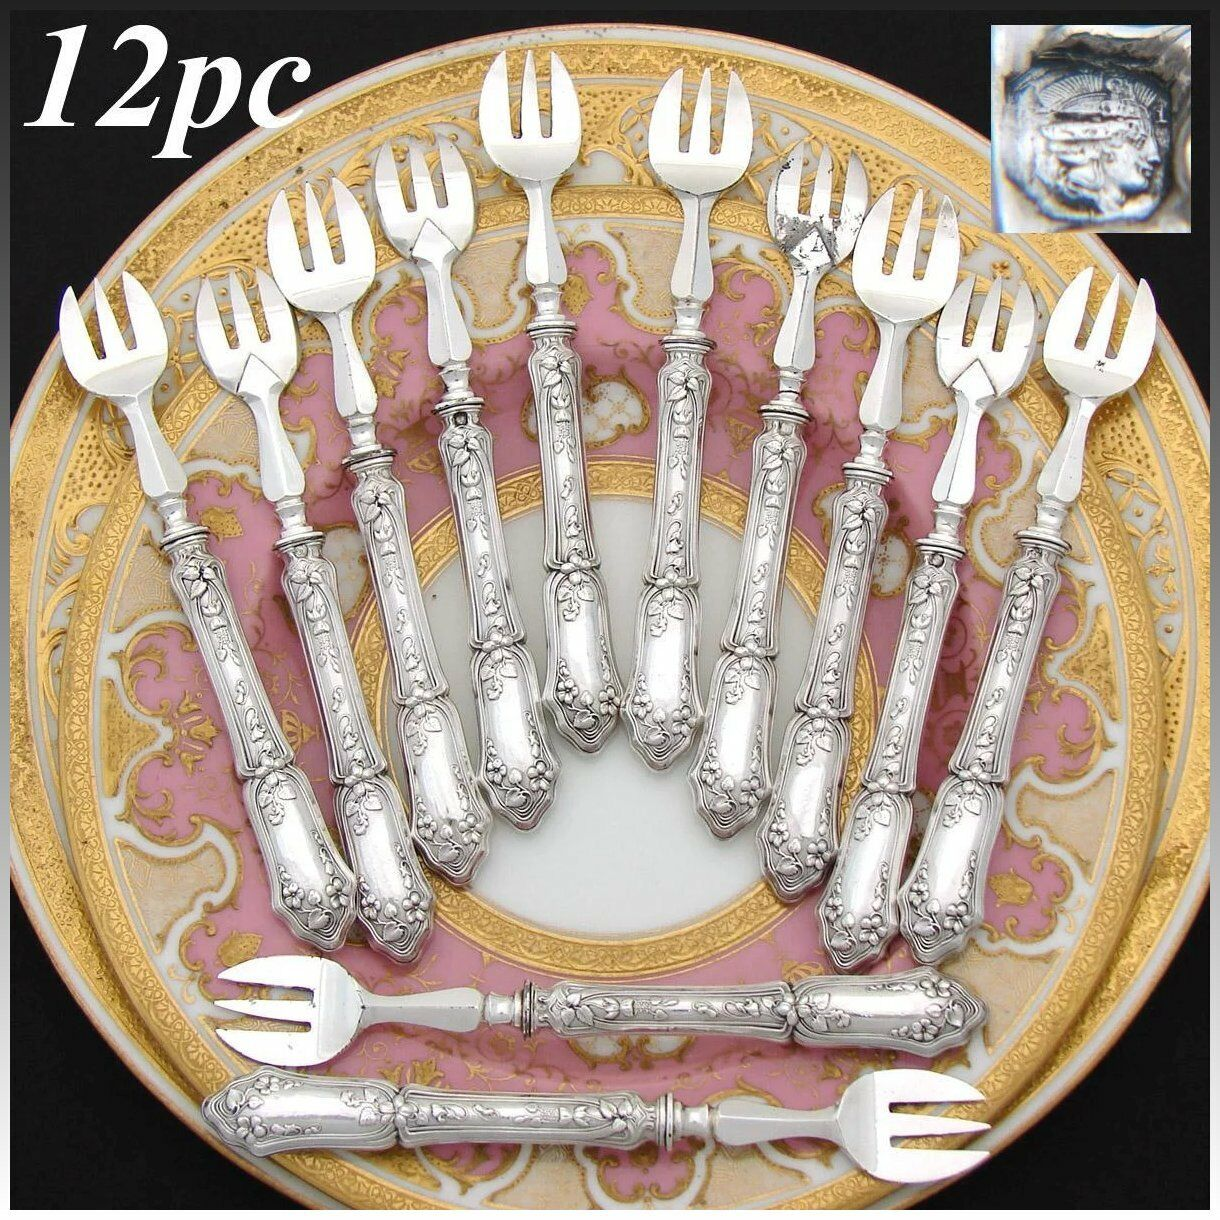 Antique French Sterling Silver Handled 12pc Oyster or Shellfish Fork Set, Floral